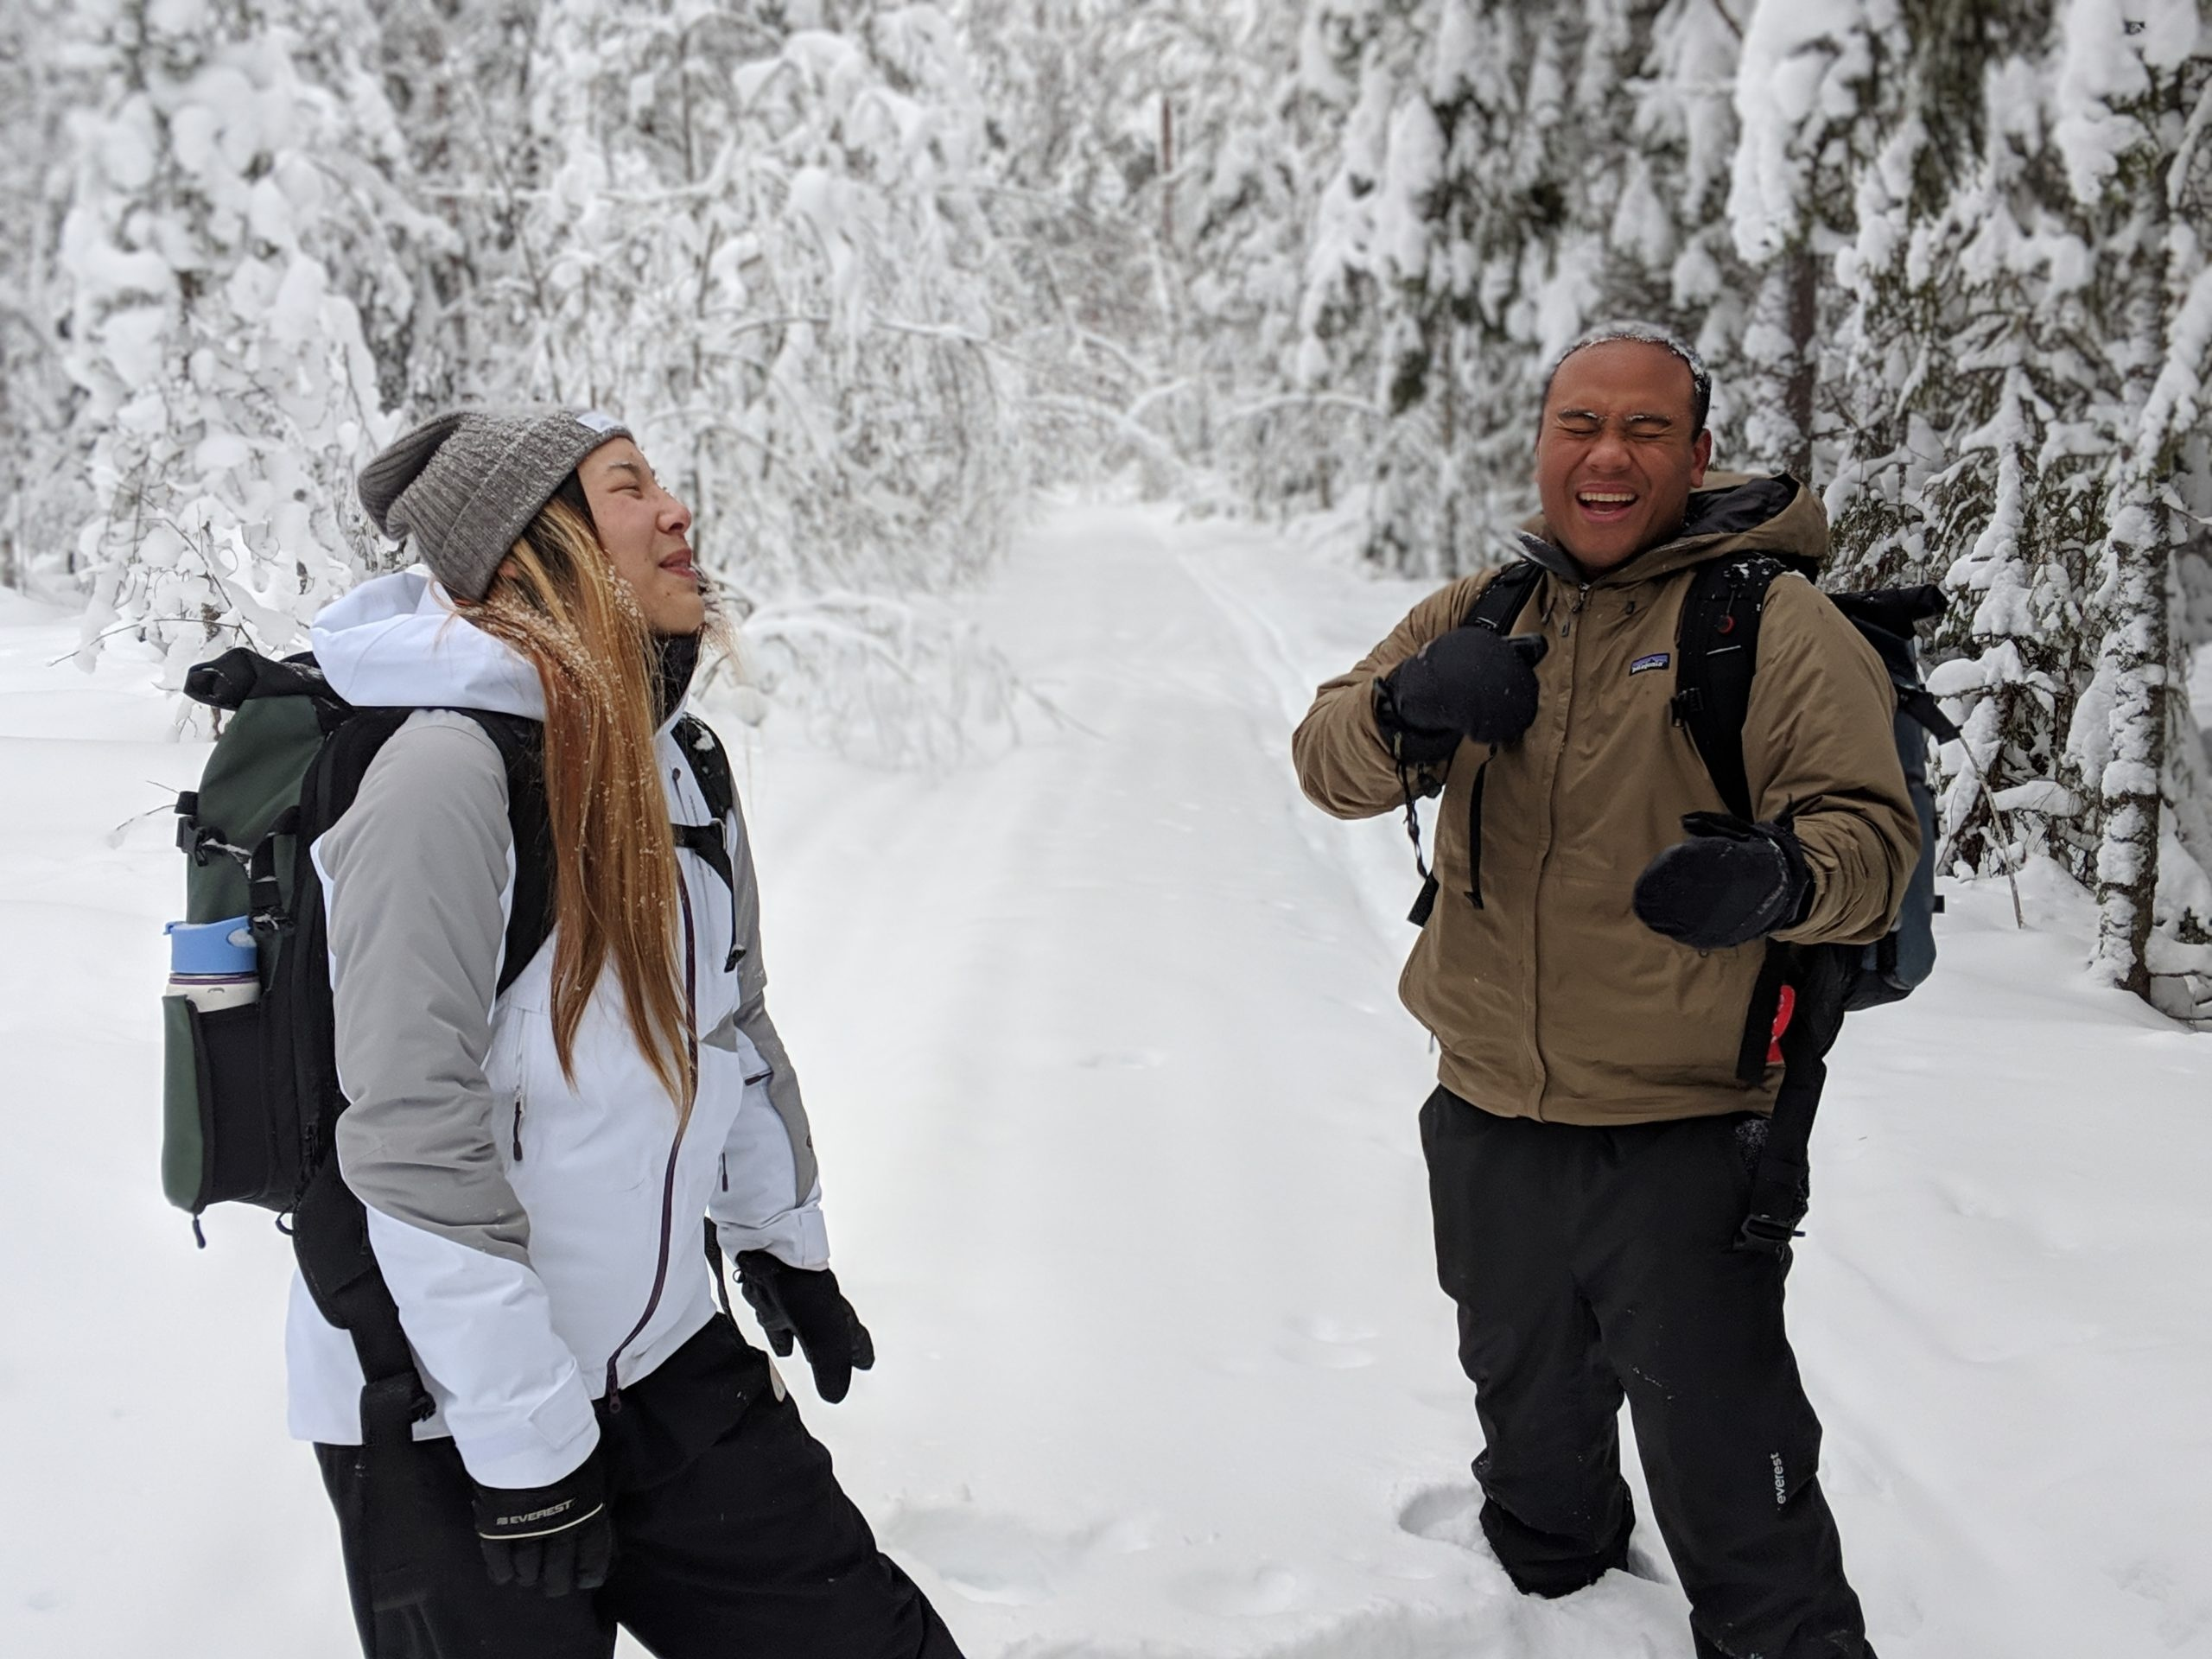 Carl and Adrienne winter hiking